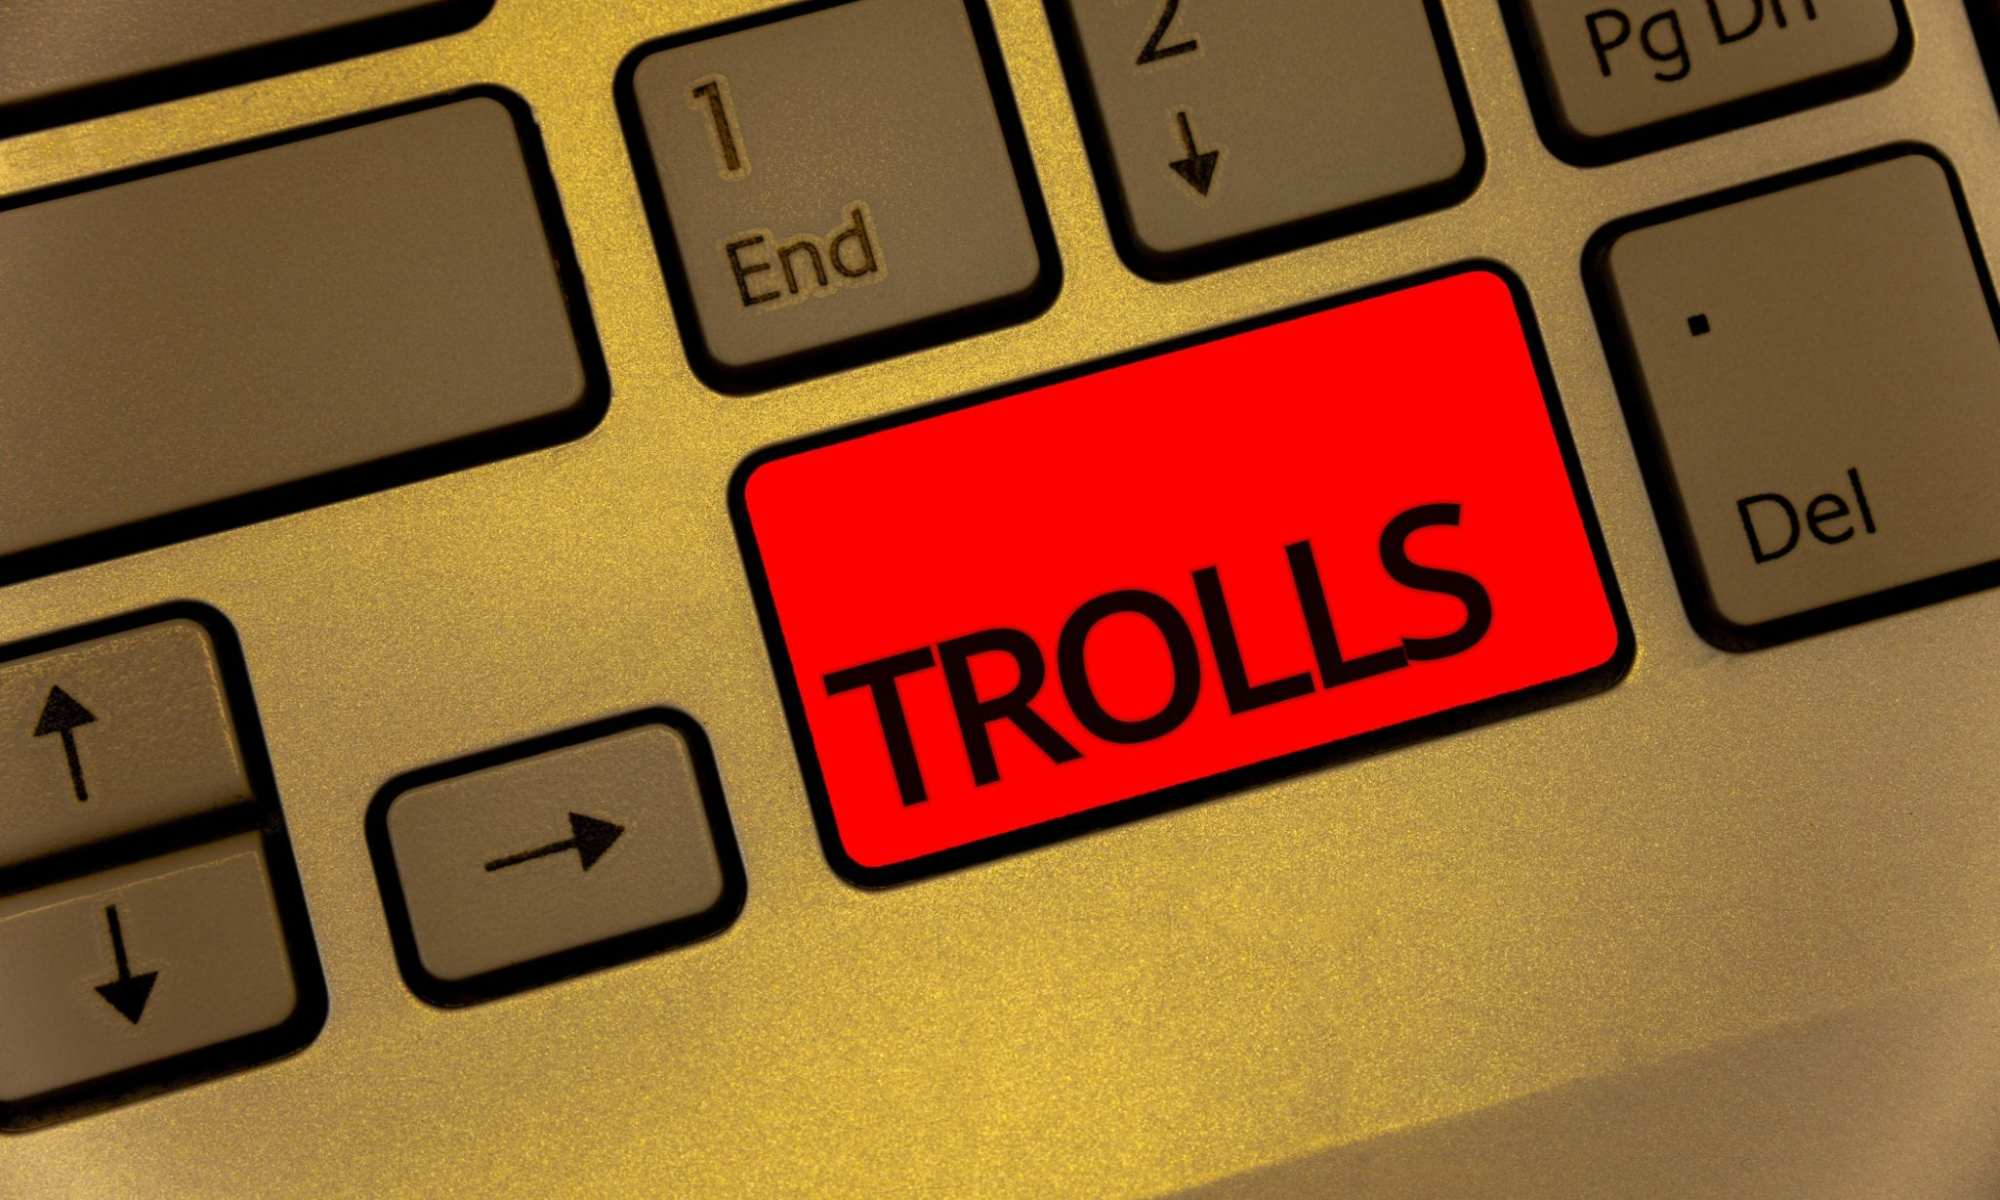 feminist bashing and harassment by trolls